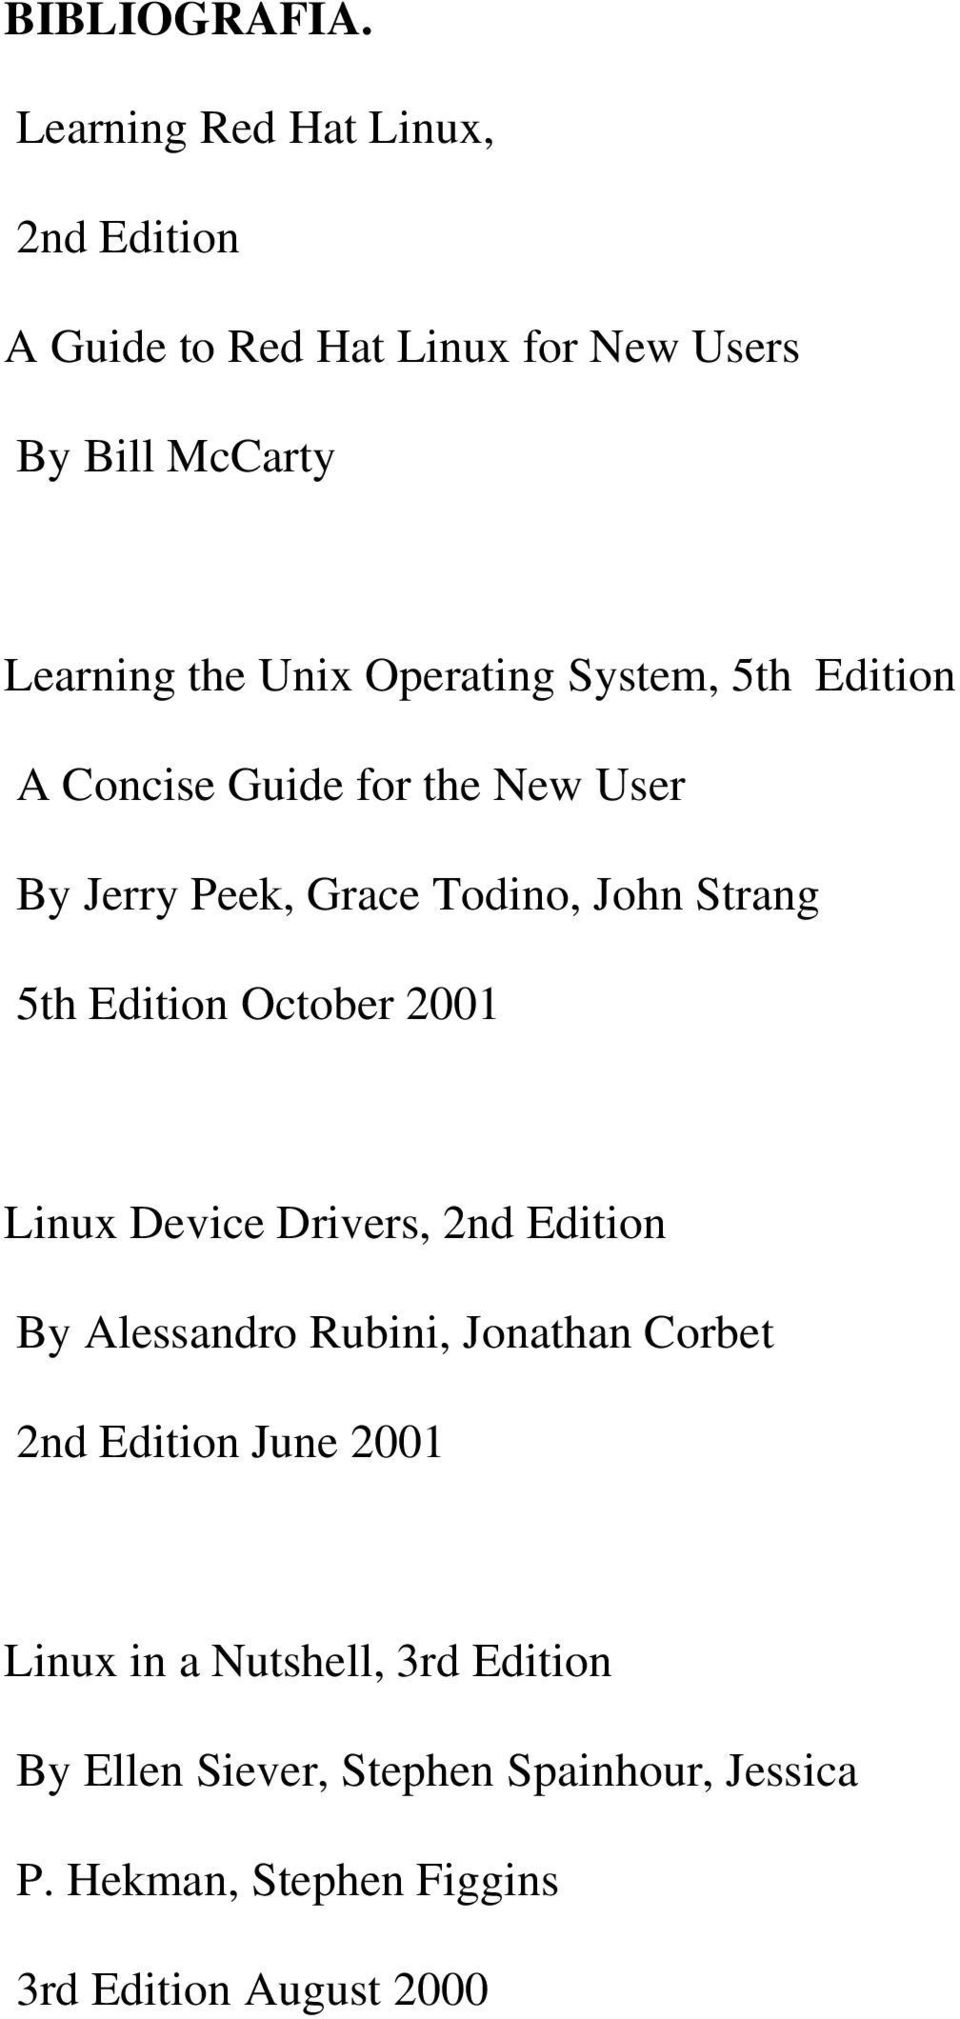 System, 5th Edition A Concise Guide for the New User By Jerry Peek, Grace Todino, John Strang 5th Edition October 2001